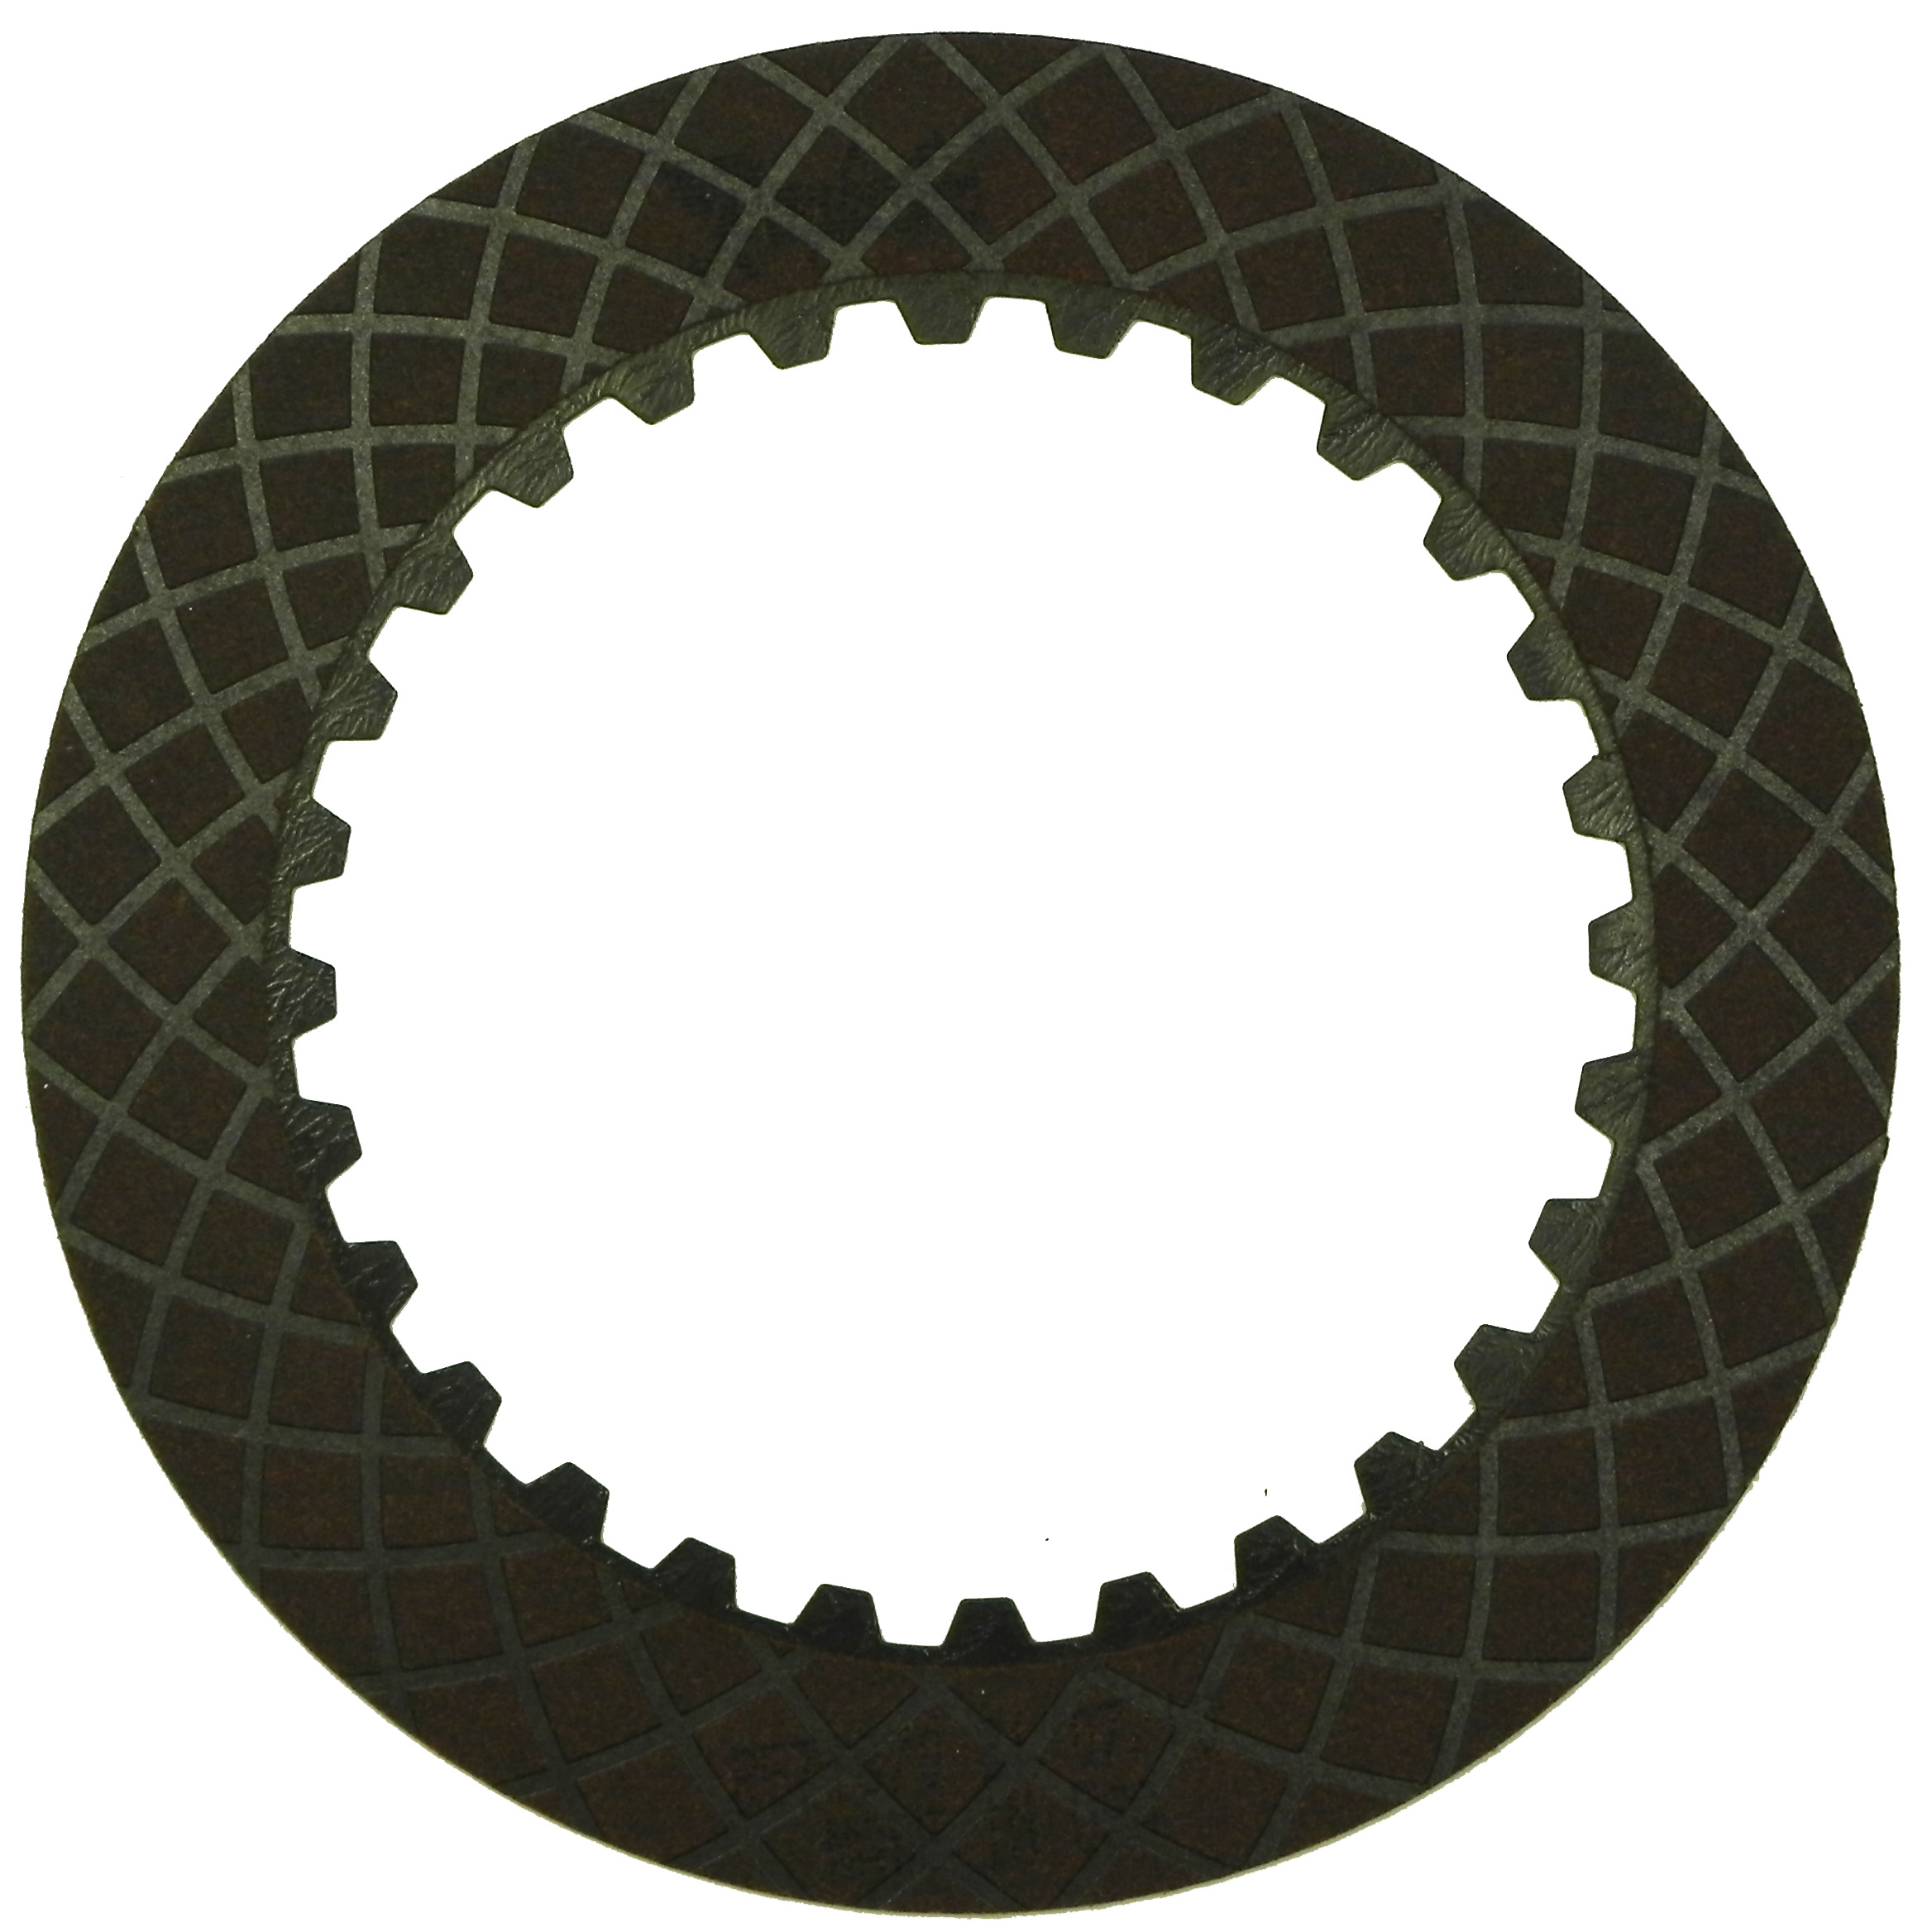 R571870 | 2003-2005 Friction Clutch Plate GPX 2nd GPX